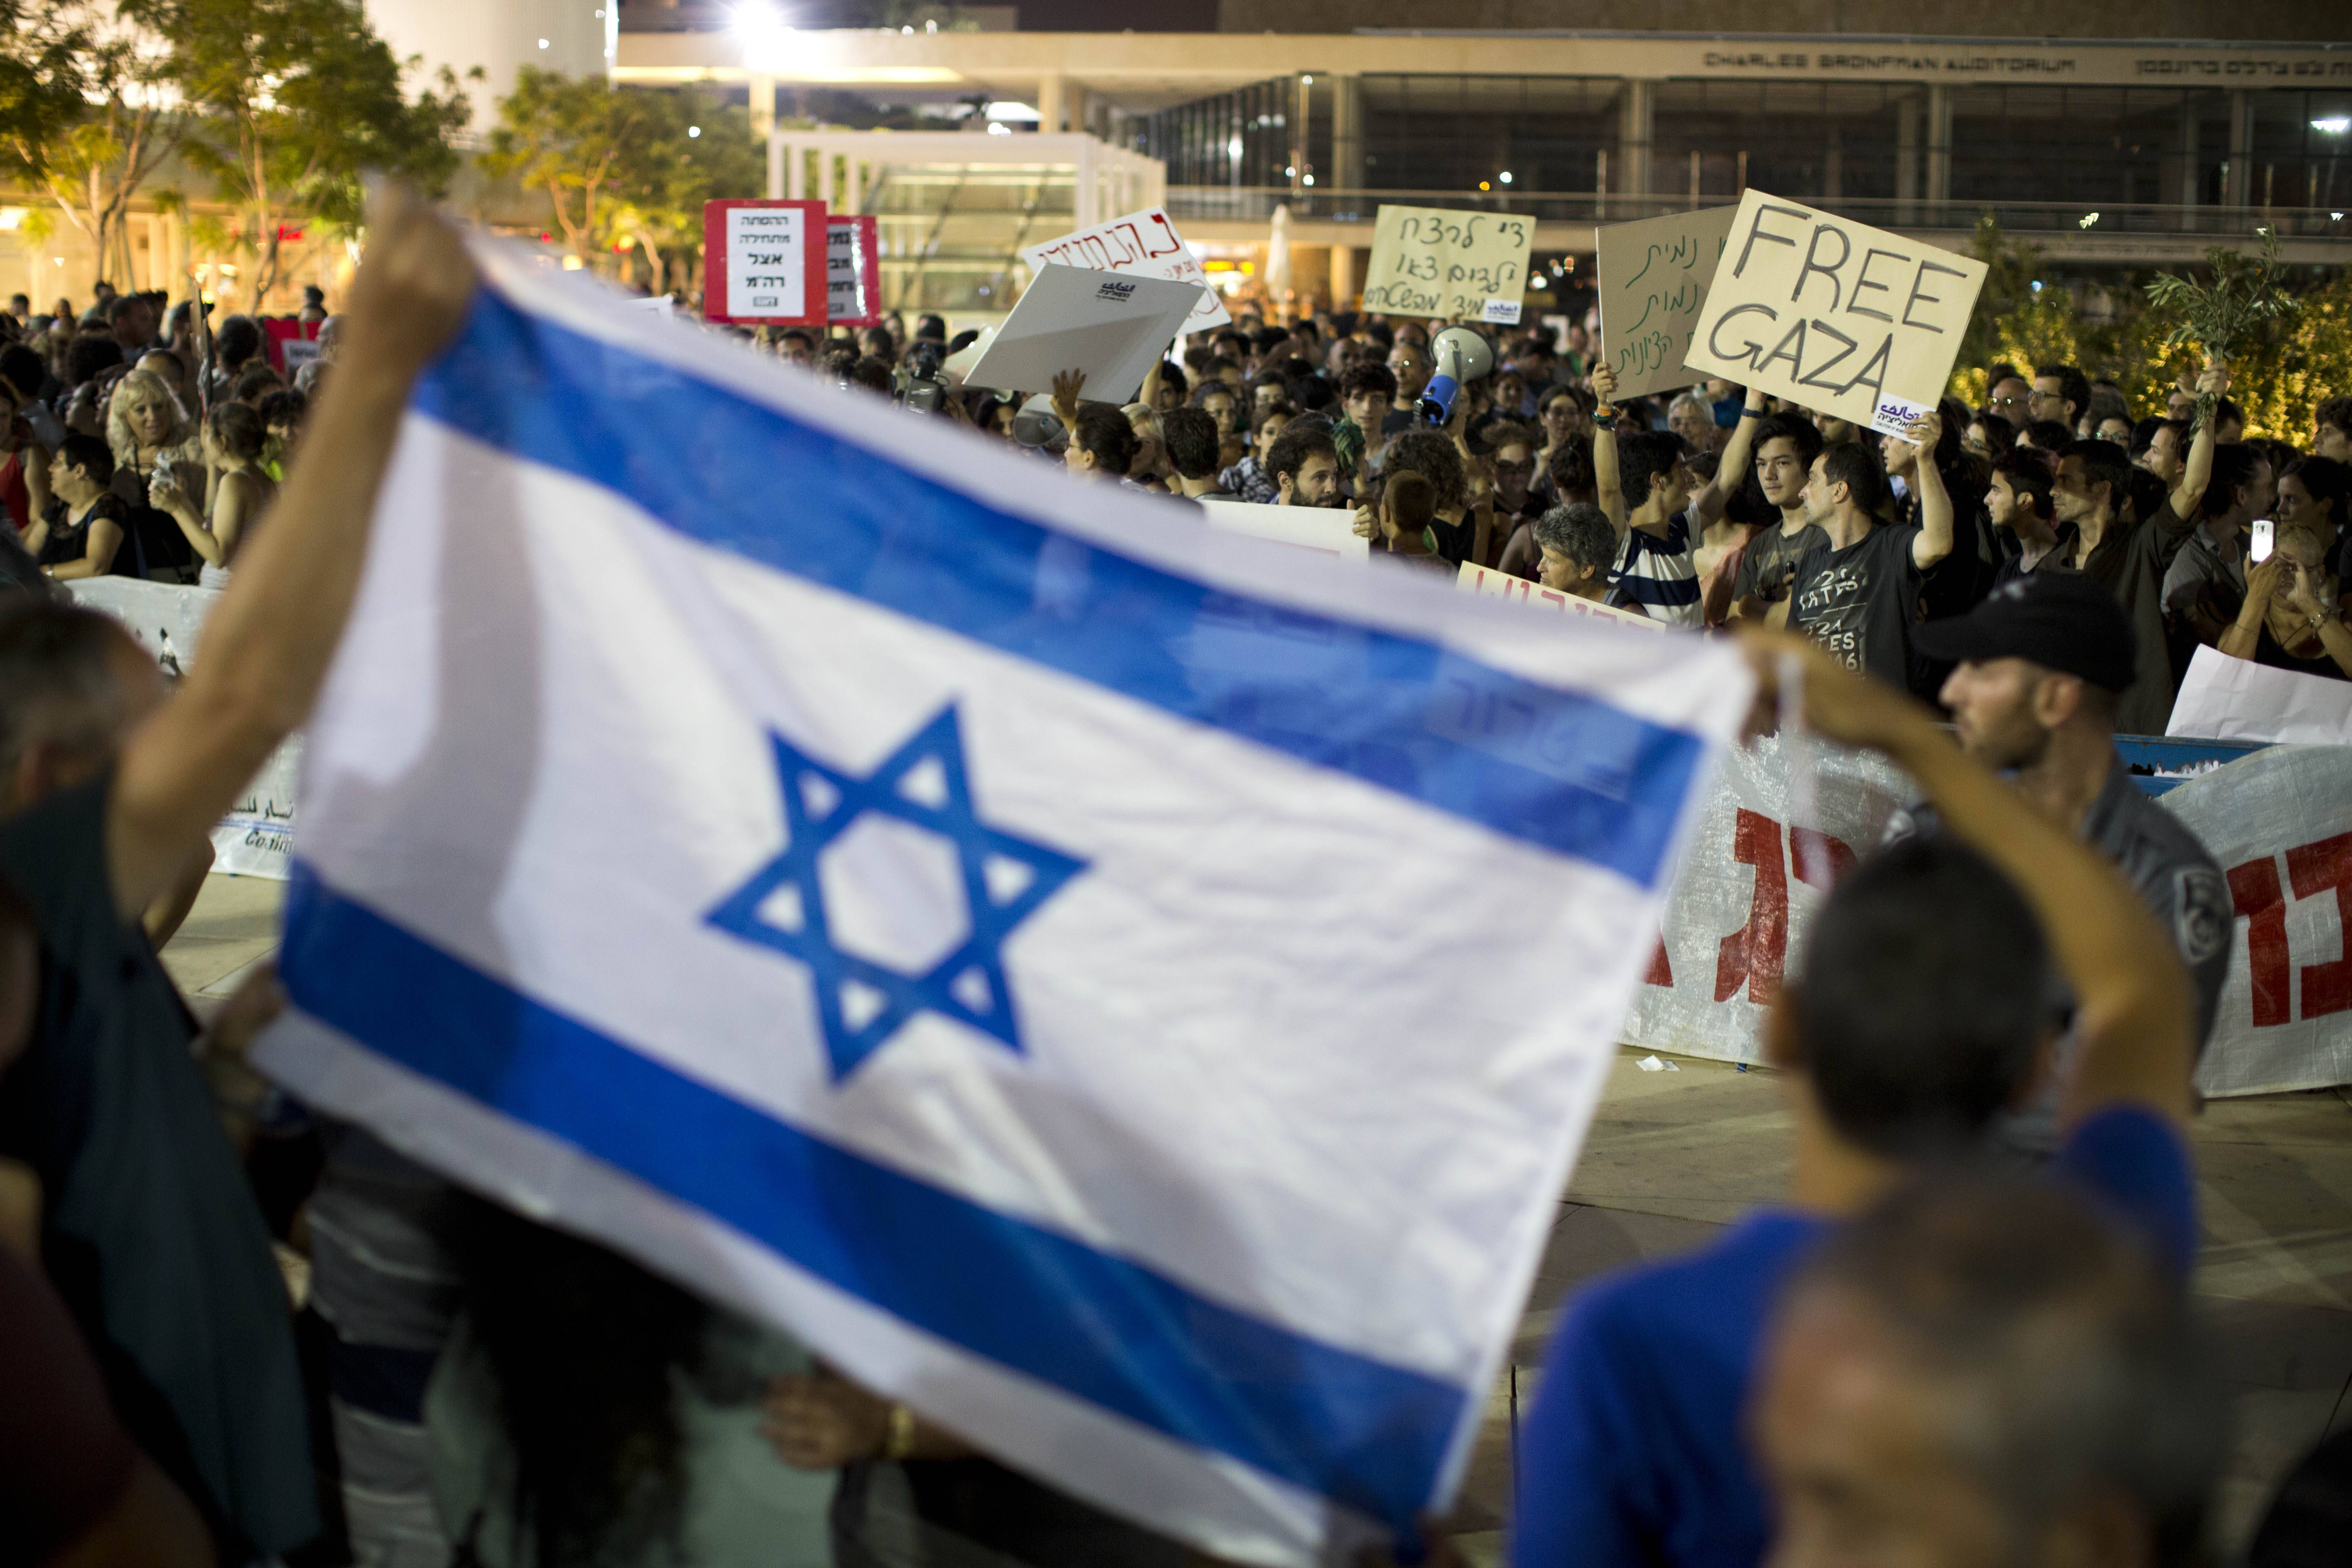 Israeli left-wing activists hold signs during a demonstration against Israel's operation in Gaza, as right-wing activists hold the Israeli flag in support of the offensive, in Tel Aviv, Israel, July 19.